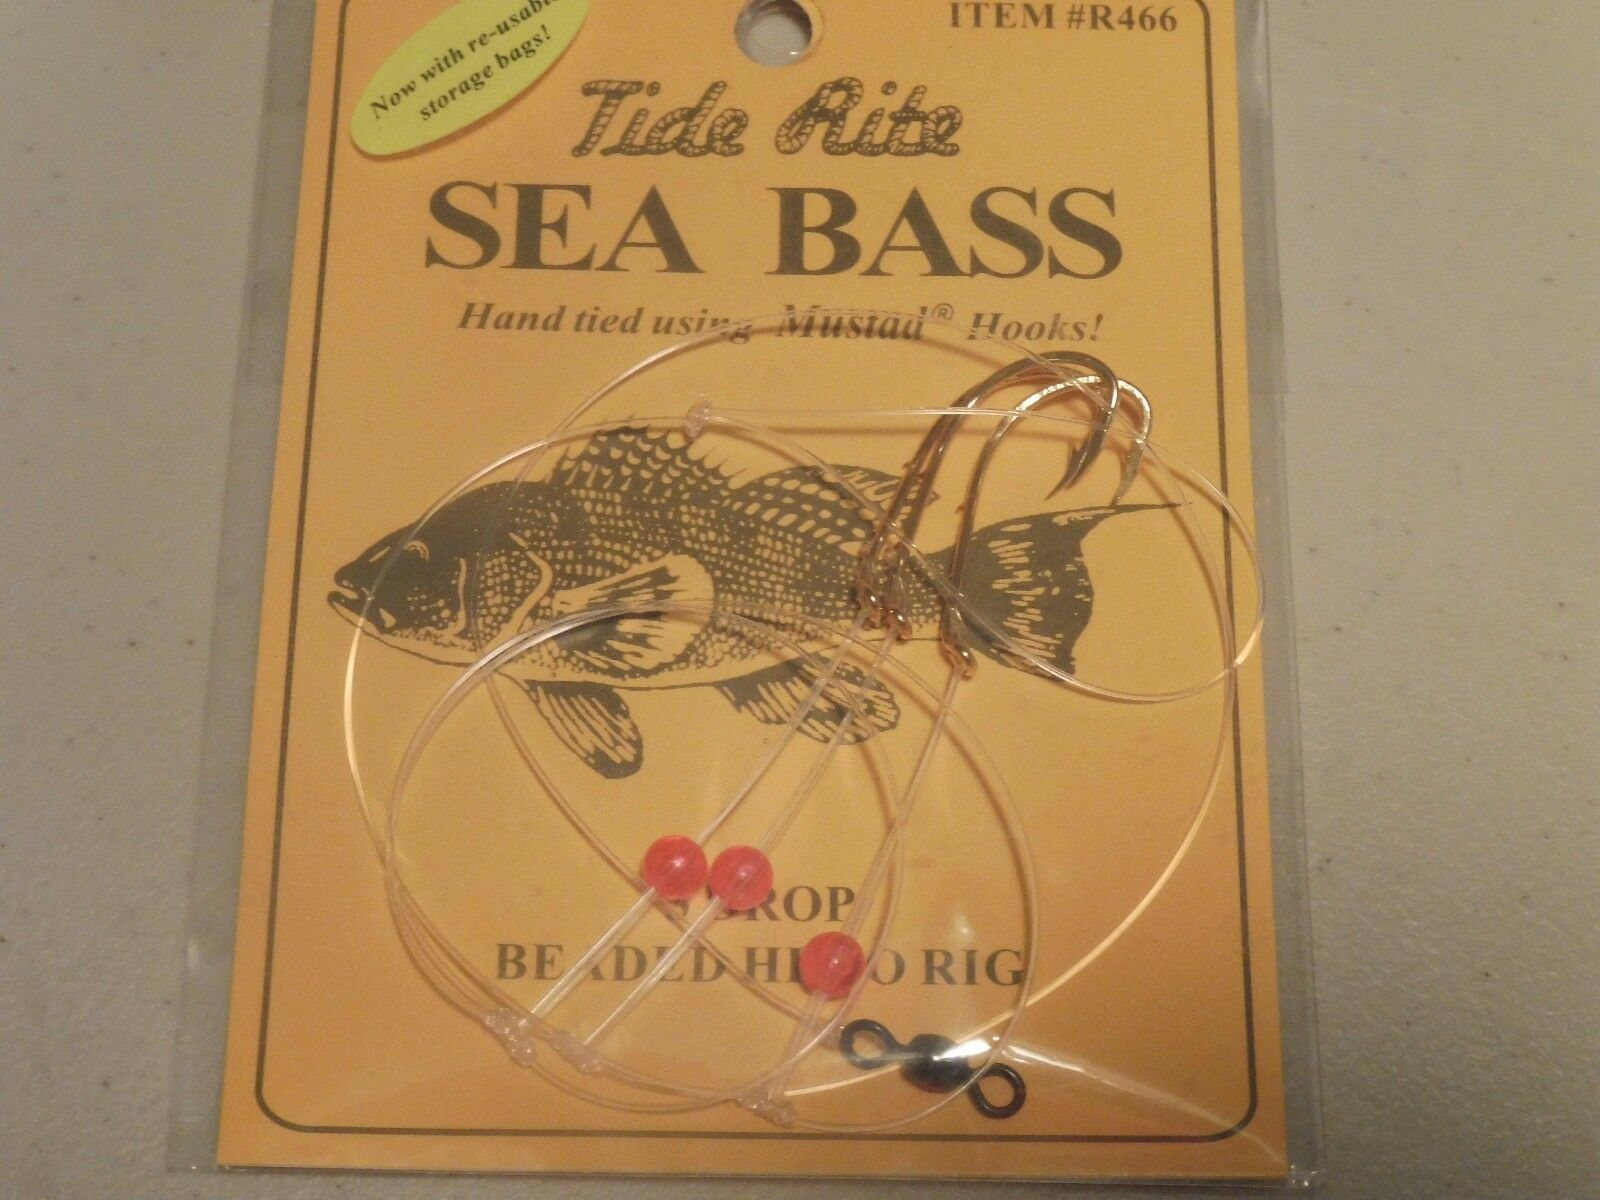 6 Sea Bass Black Tide Rite R466 3 Drop Beaded Hi-lo Saltwater Fish Rig Mustad